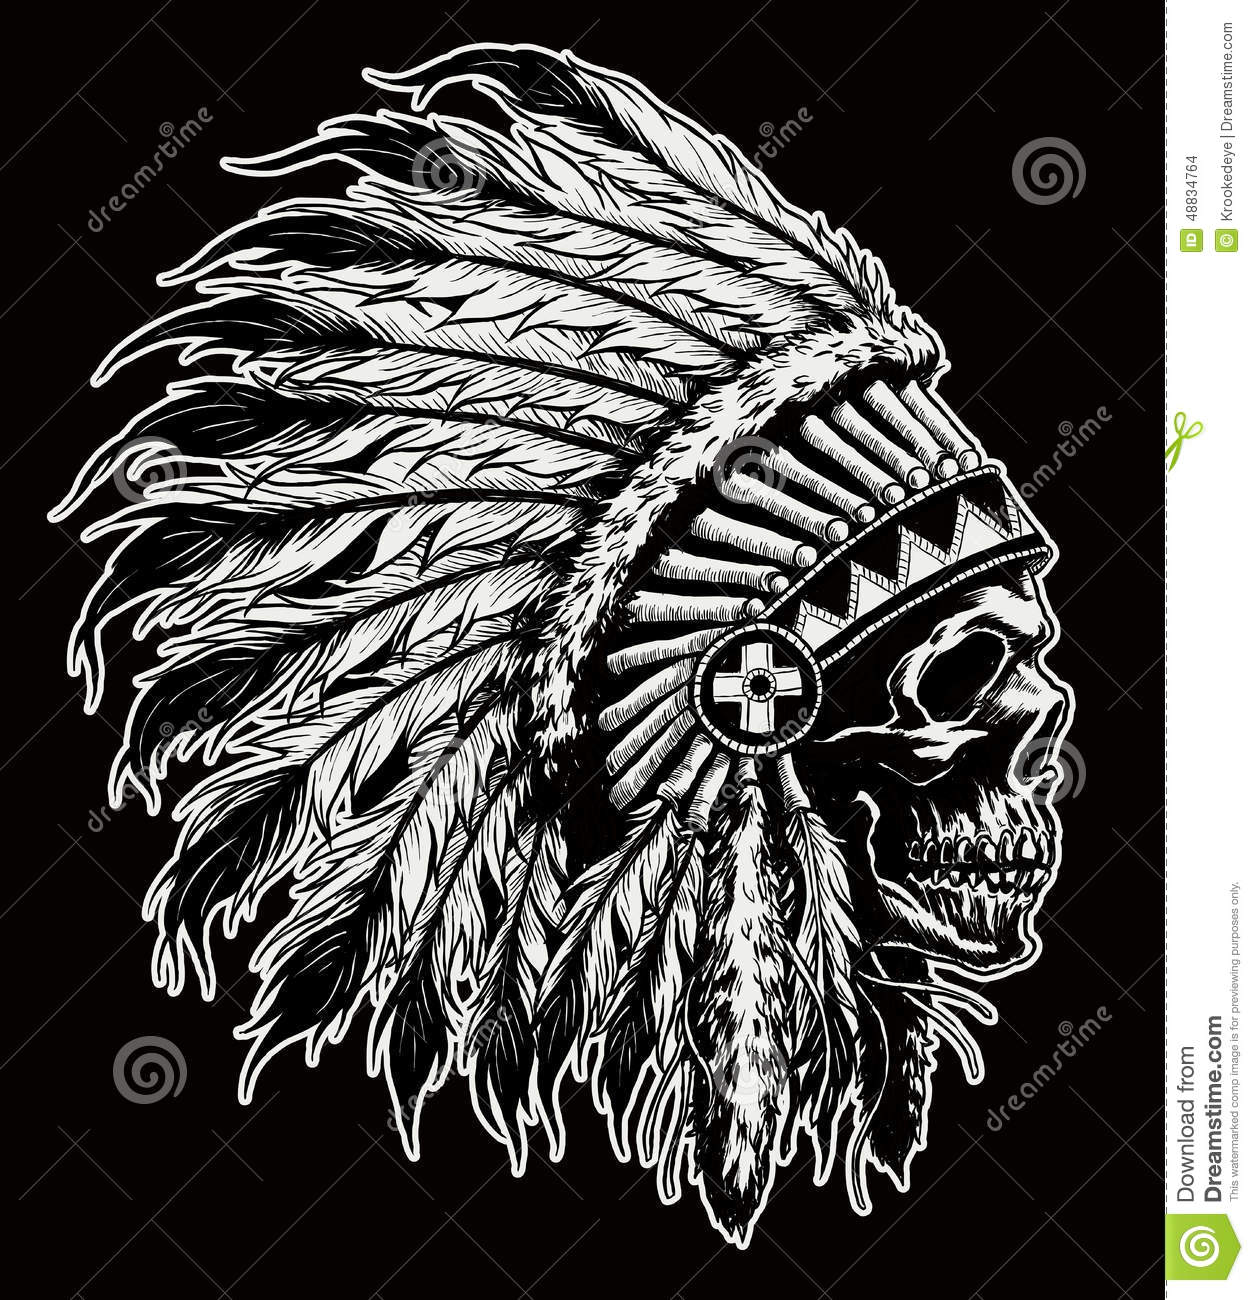 19 native american cherokee tribal tattoos apache indians outdoor things pinterest. Black Bedroom Furniture Sets. Home Design Ideas